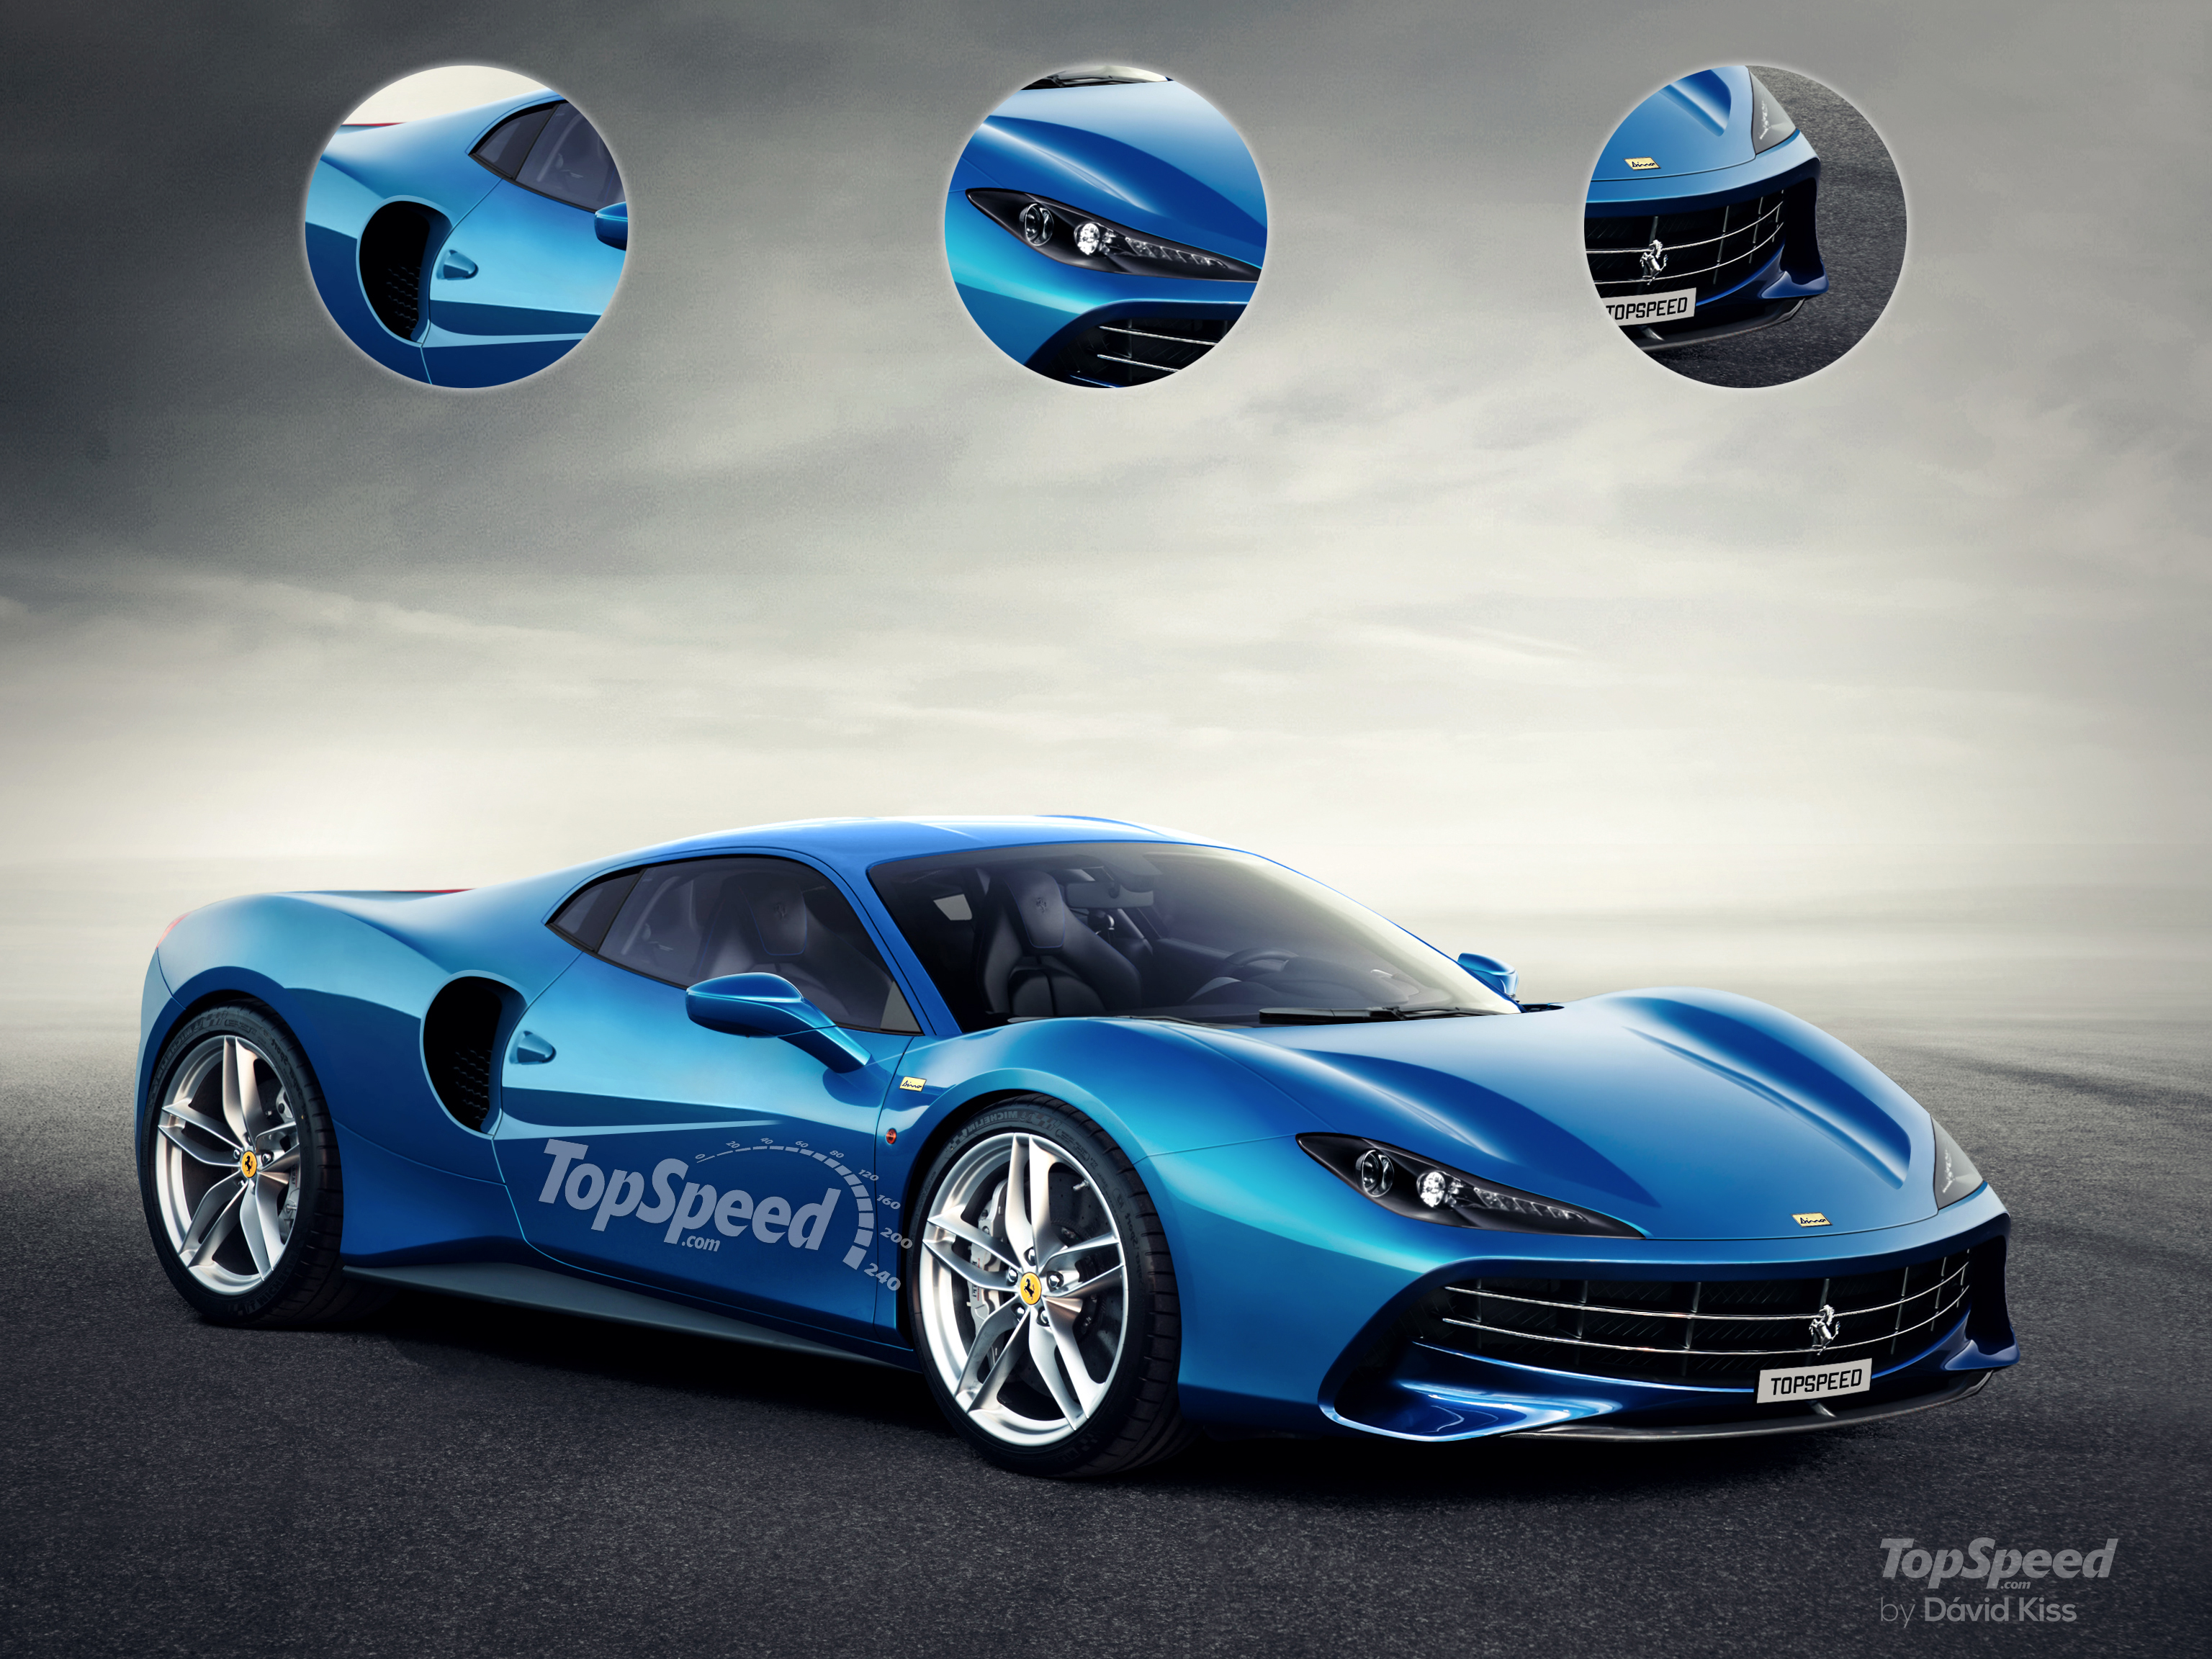 dubaidrives others ferrari the with and cars up speciale used com close